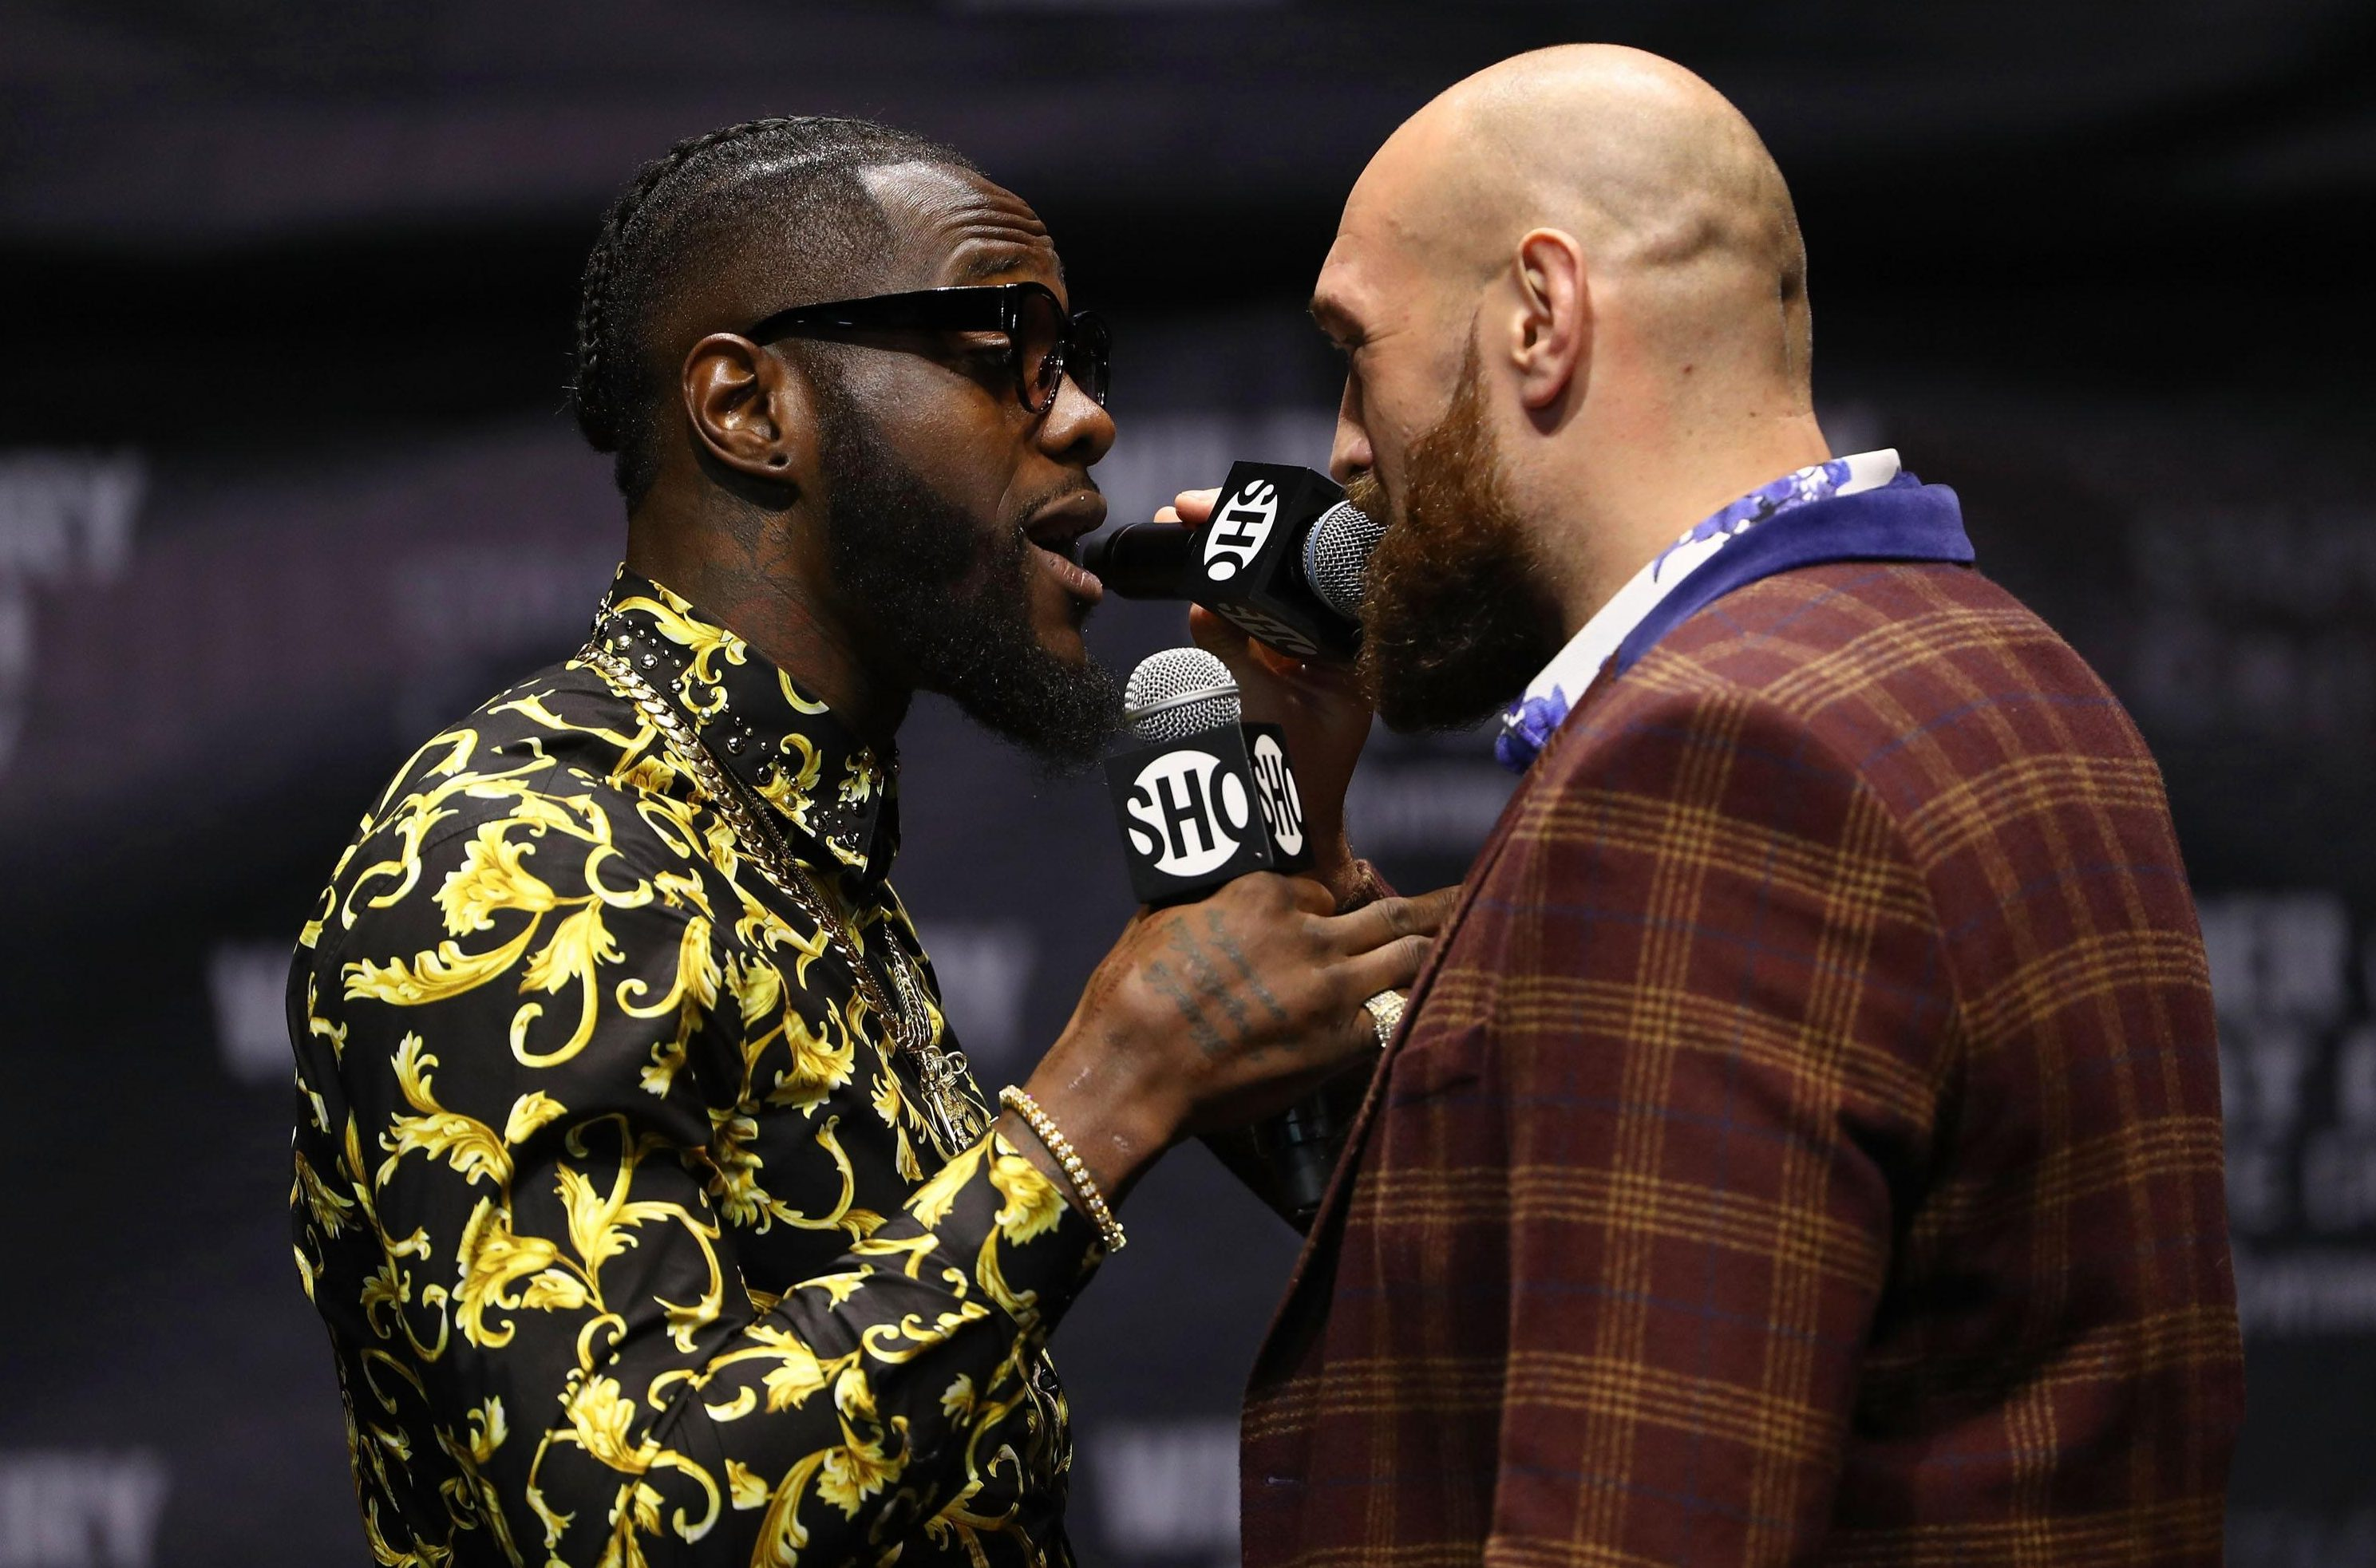 WBC champion Wilder will defend his gold against Fury on December 1